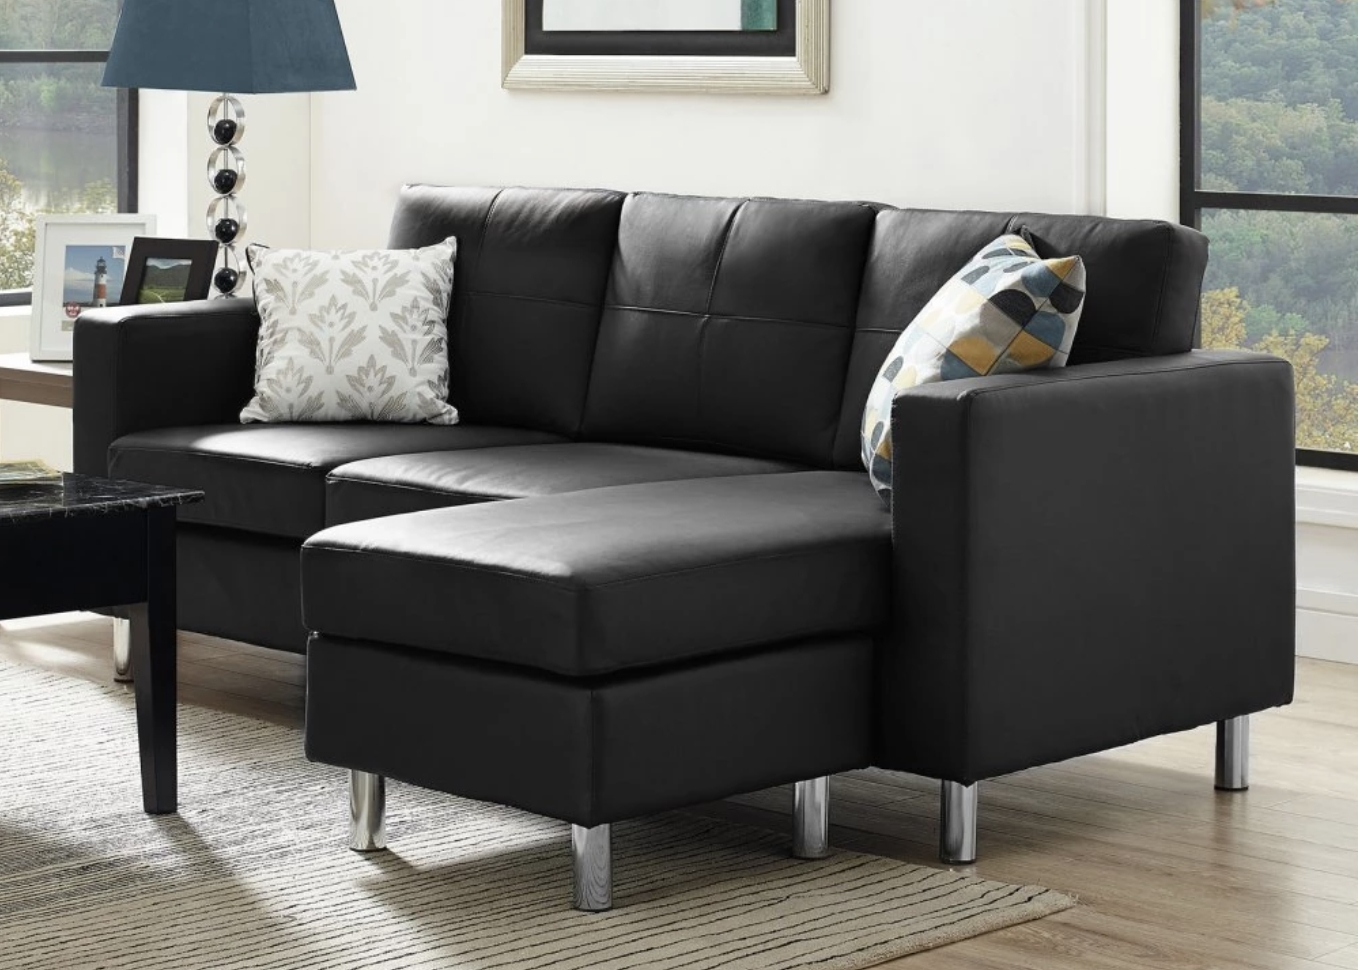 Well Known 100X80 Sectional Sofas Regarding 75 Modern Sectional Sofas For Small Spaces (2018) (View 17 of 20)